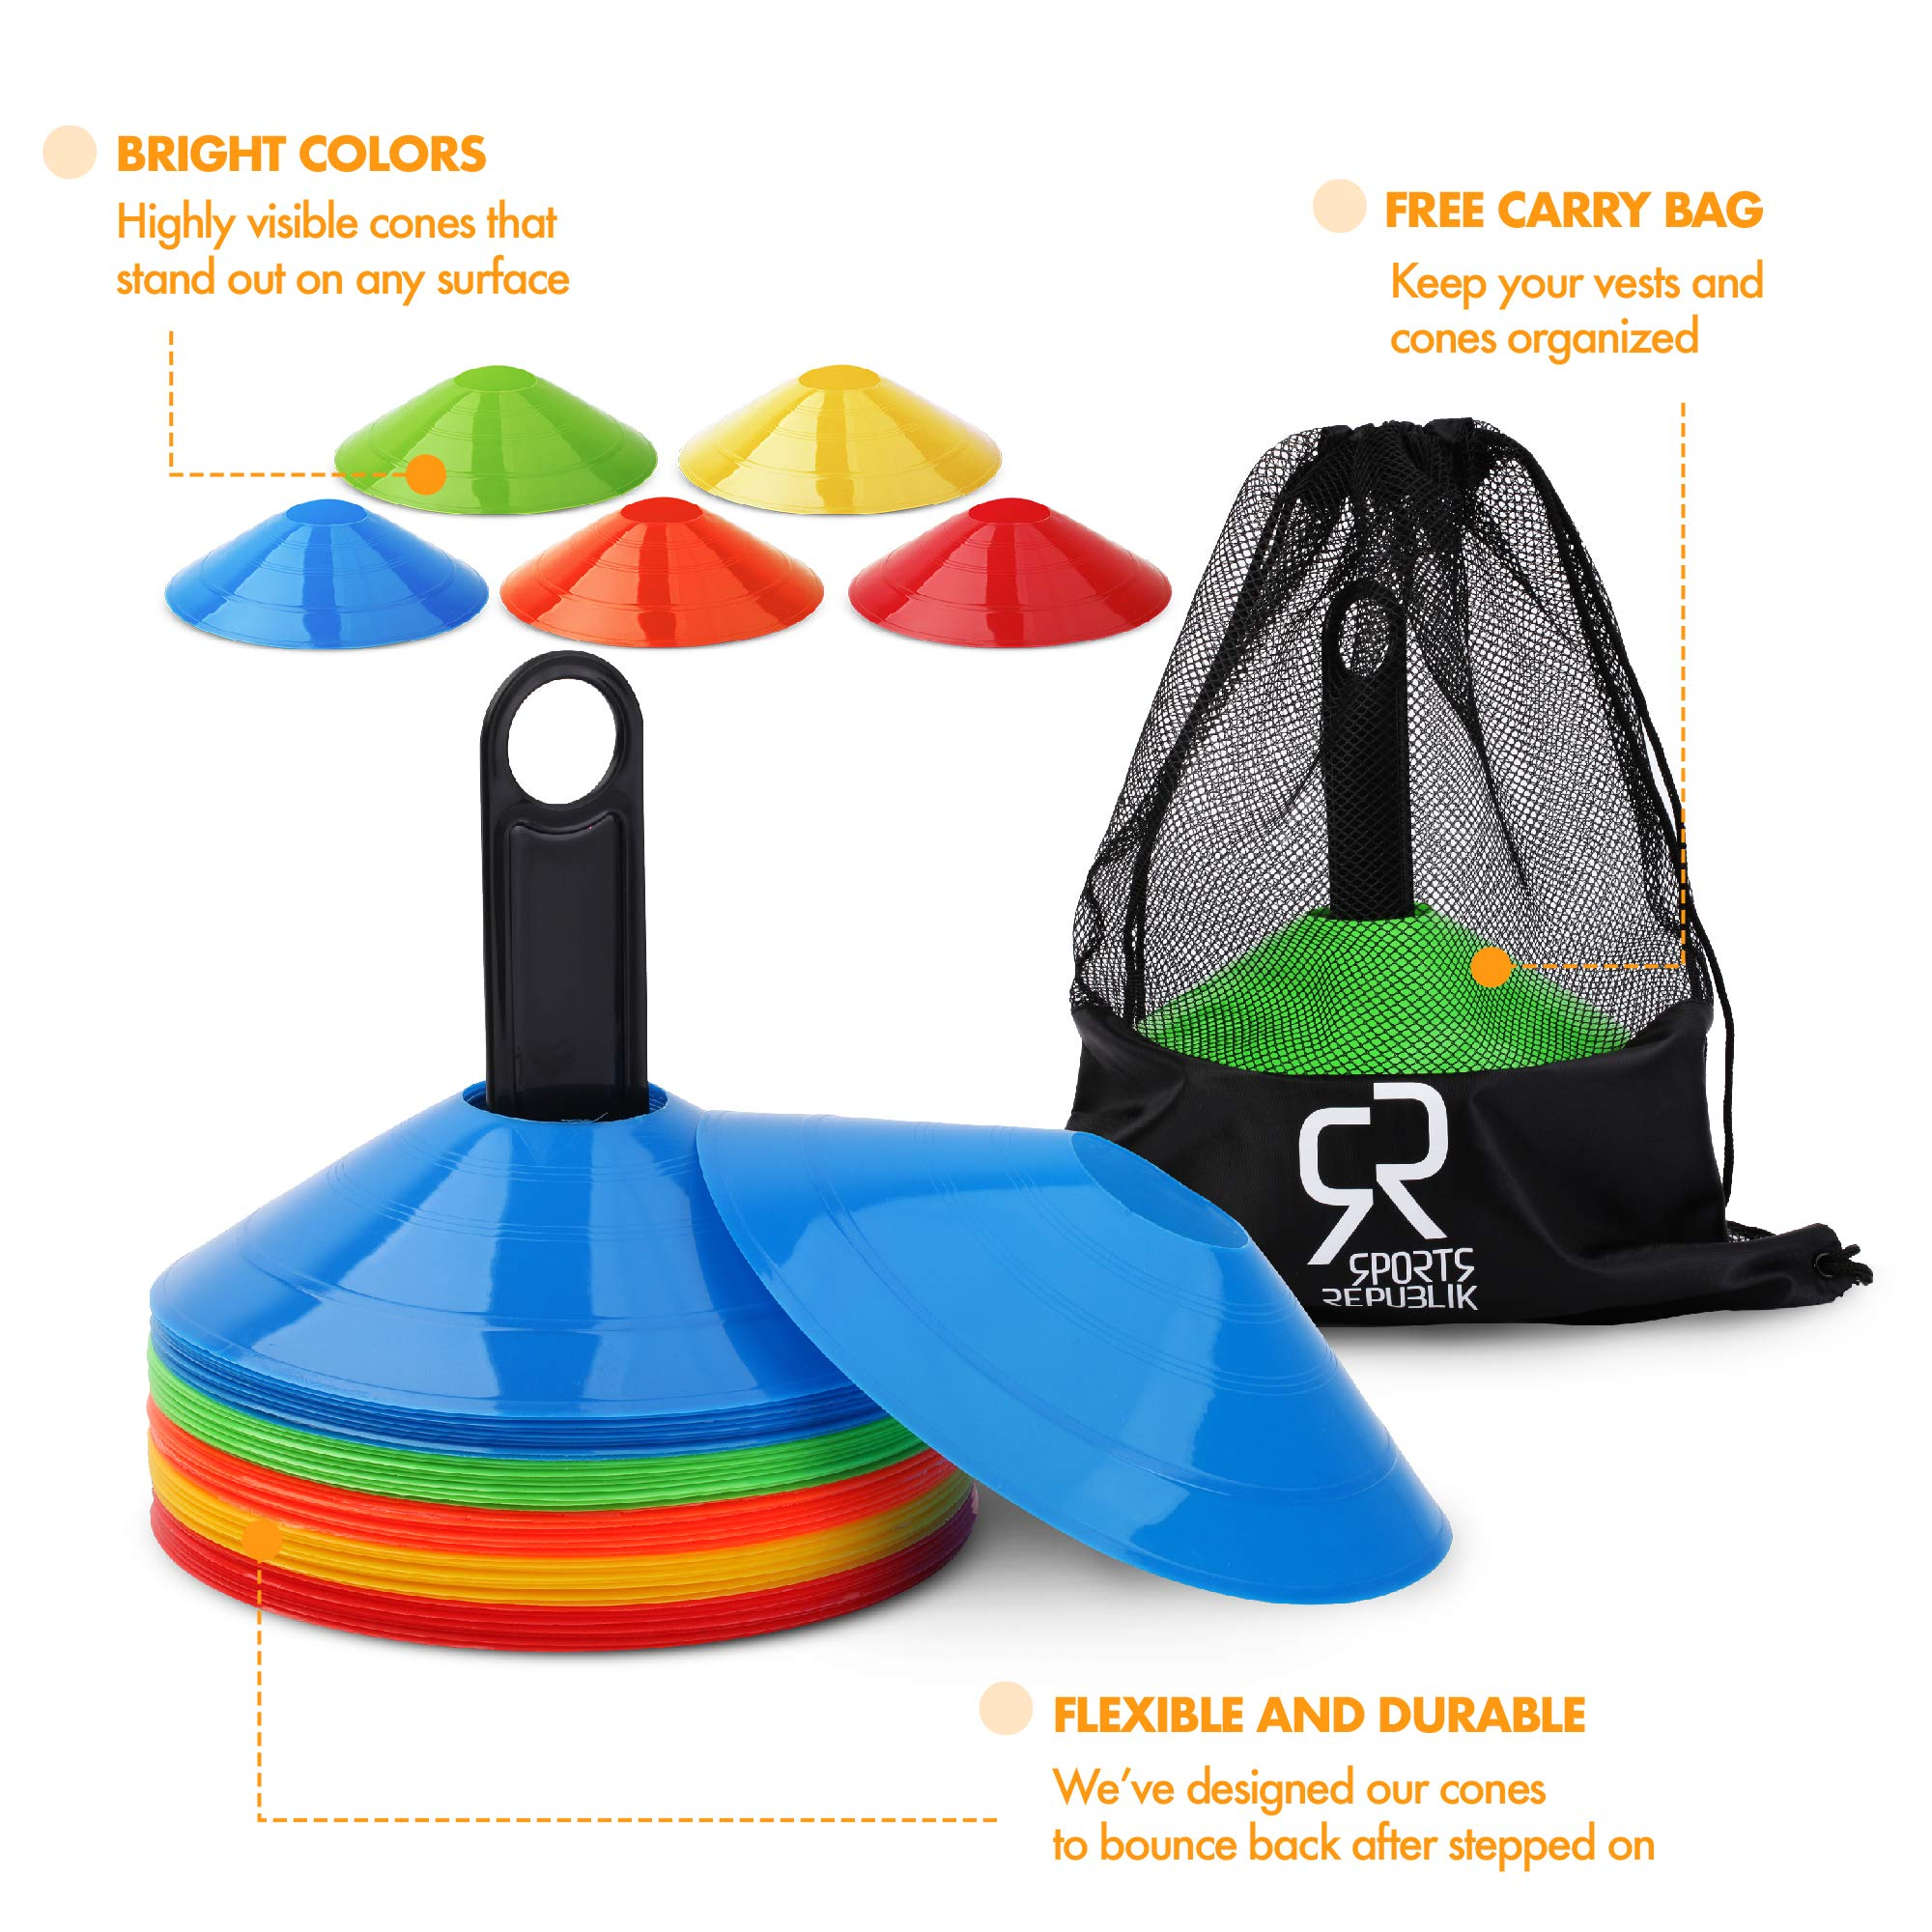 Soccer Cones (Set of 50) and Sports Jerseys Pinnies (12-Pack) - Perfect Disc Cones for Basketball Drills, Complete Soccer Training Equipment by SportsRepublik (Image #4)